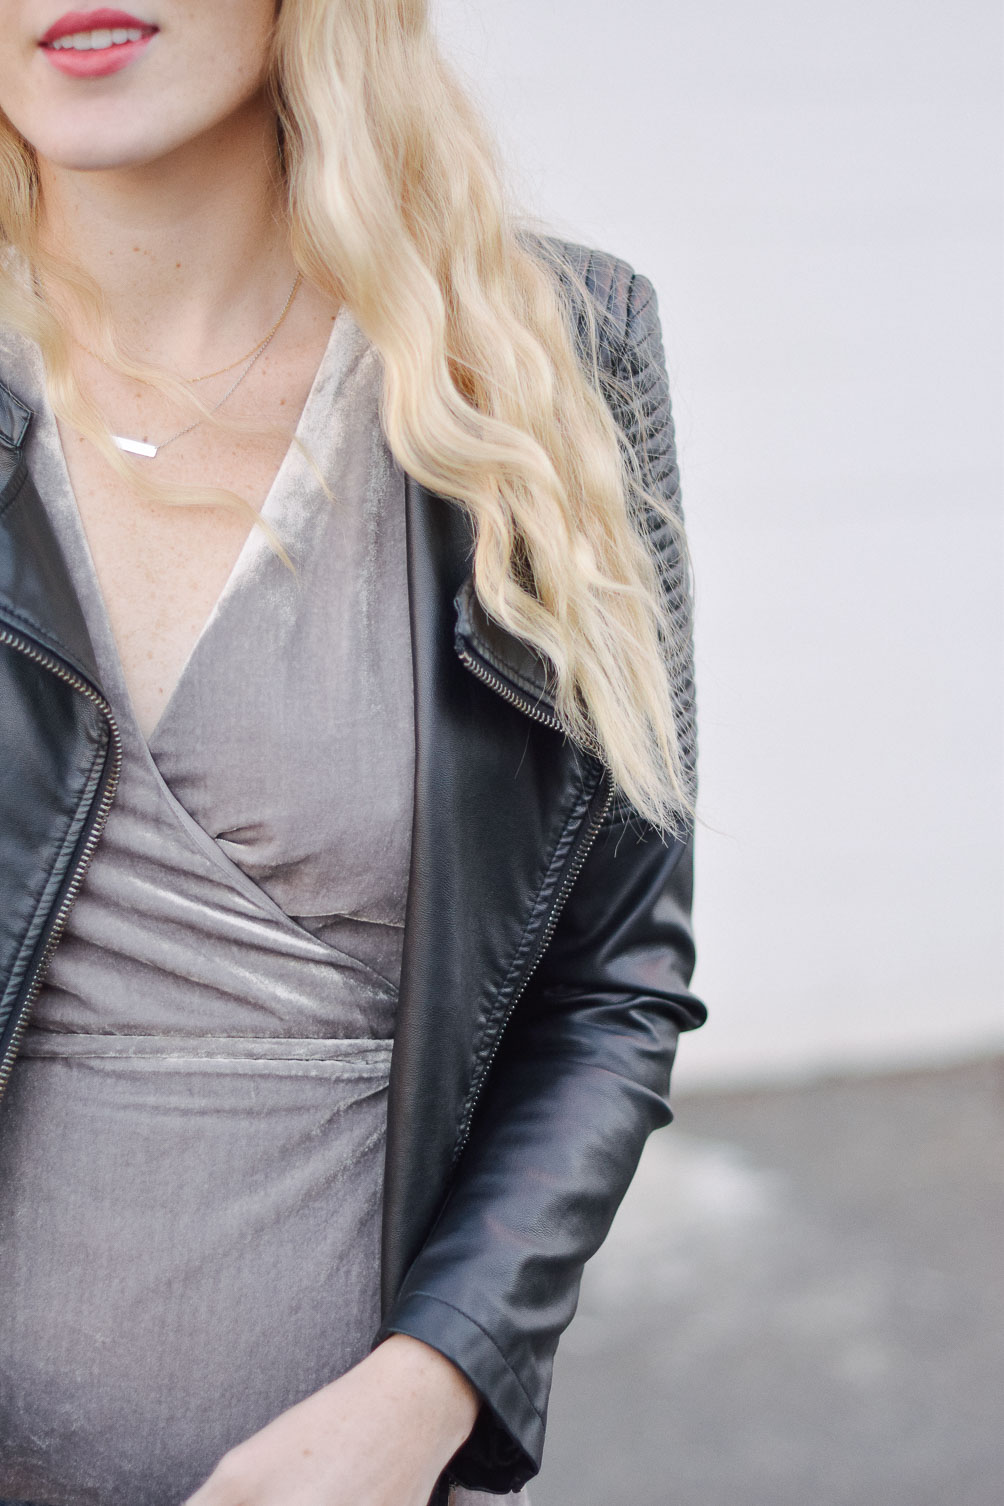 styling a metallic holiday dress party outfit with faux leather jacket